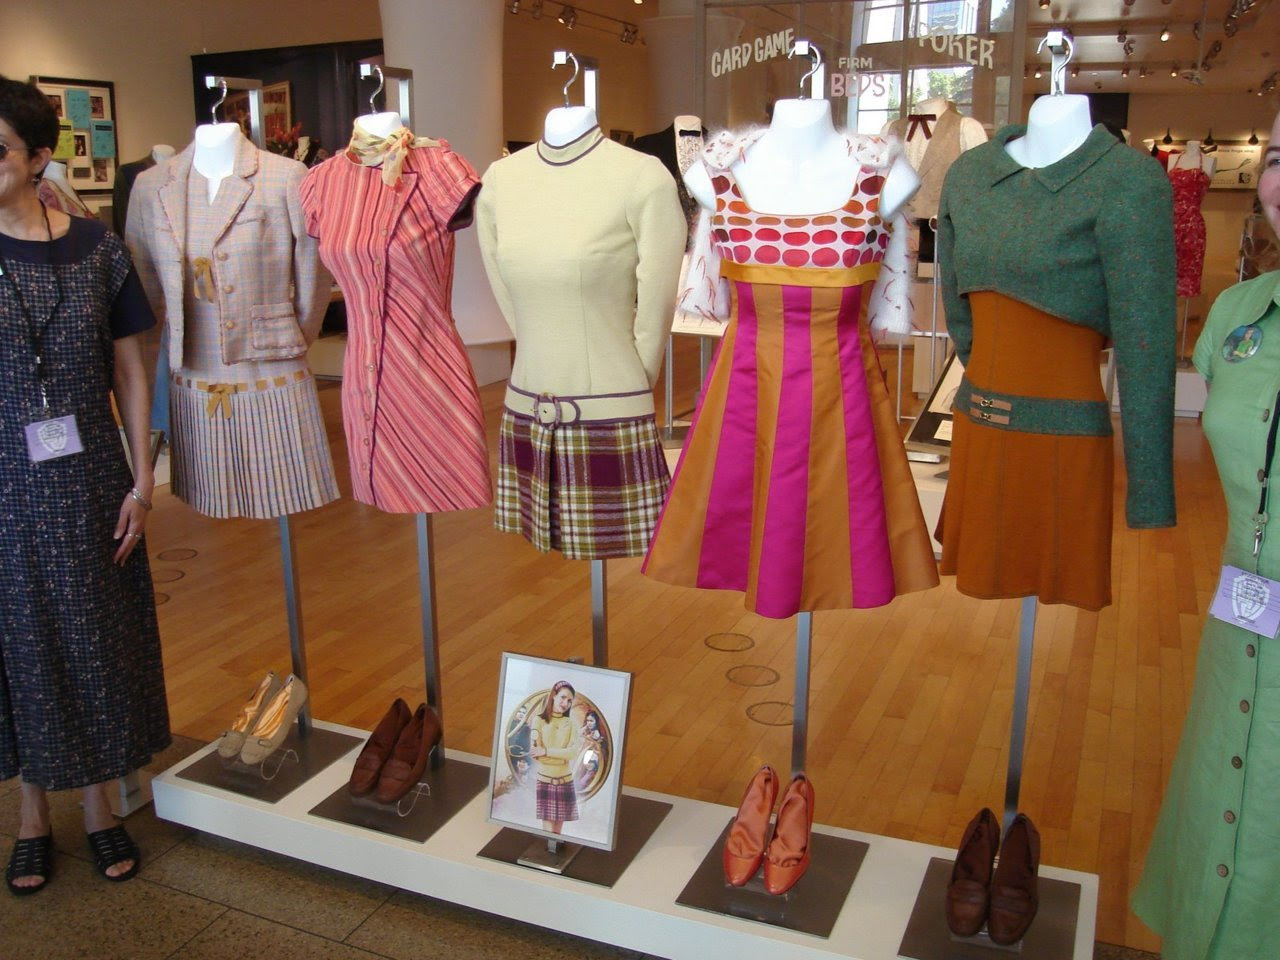 nancy drew fans  nerdiegirlie the costumes in the 2007